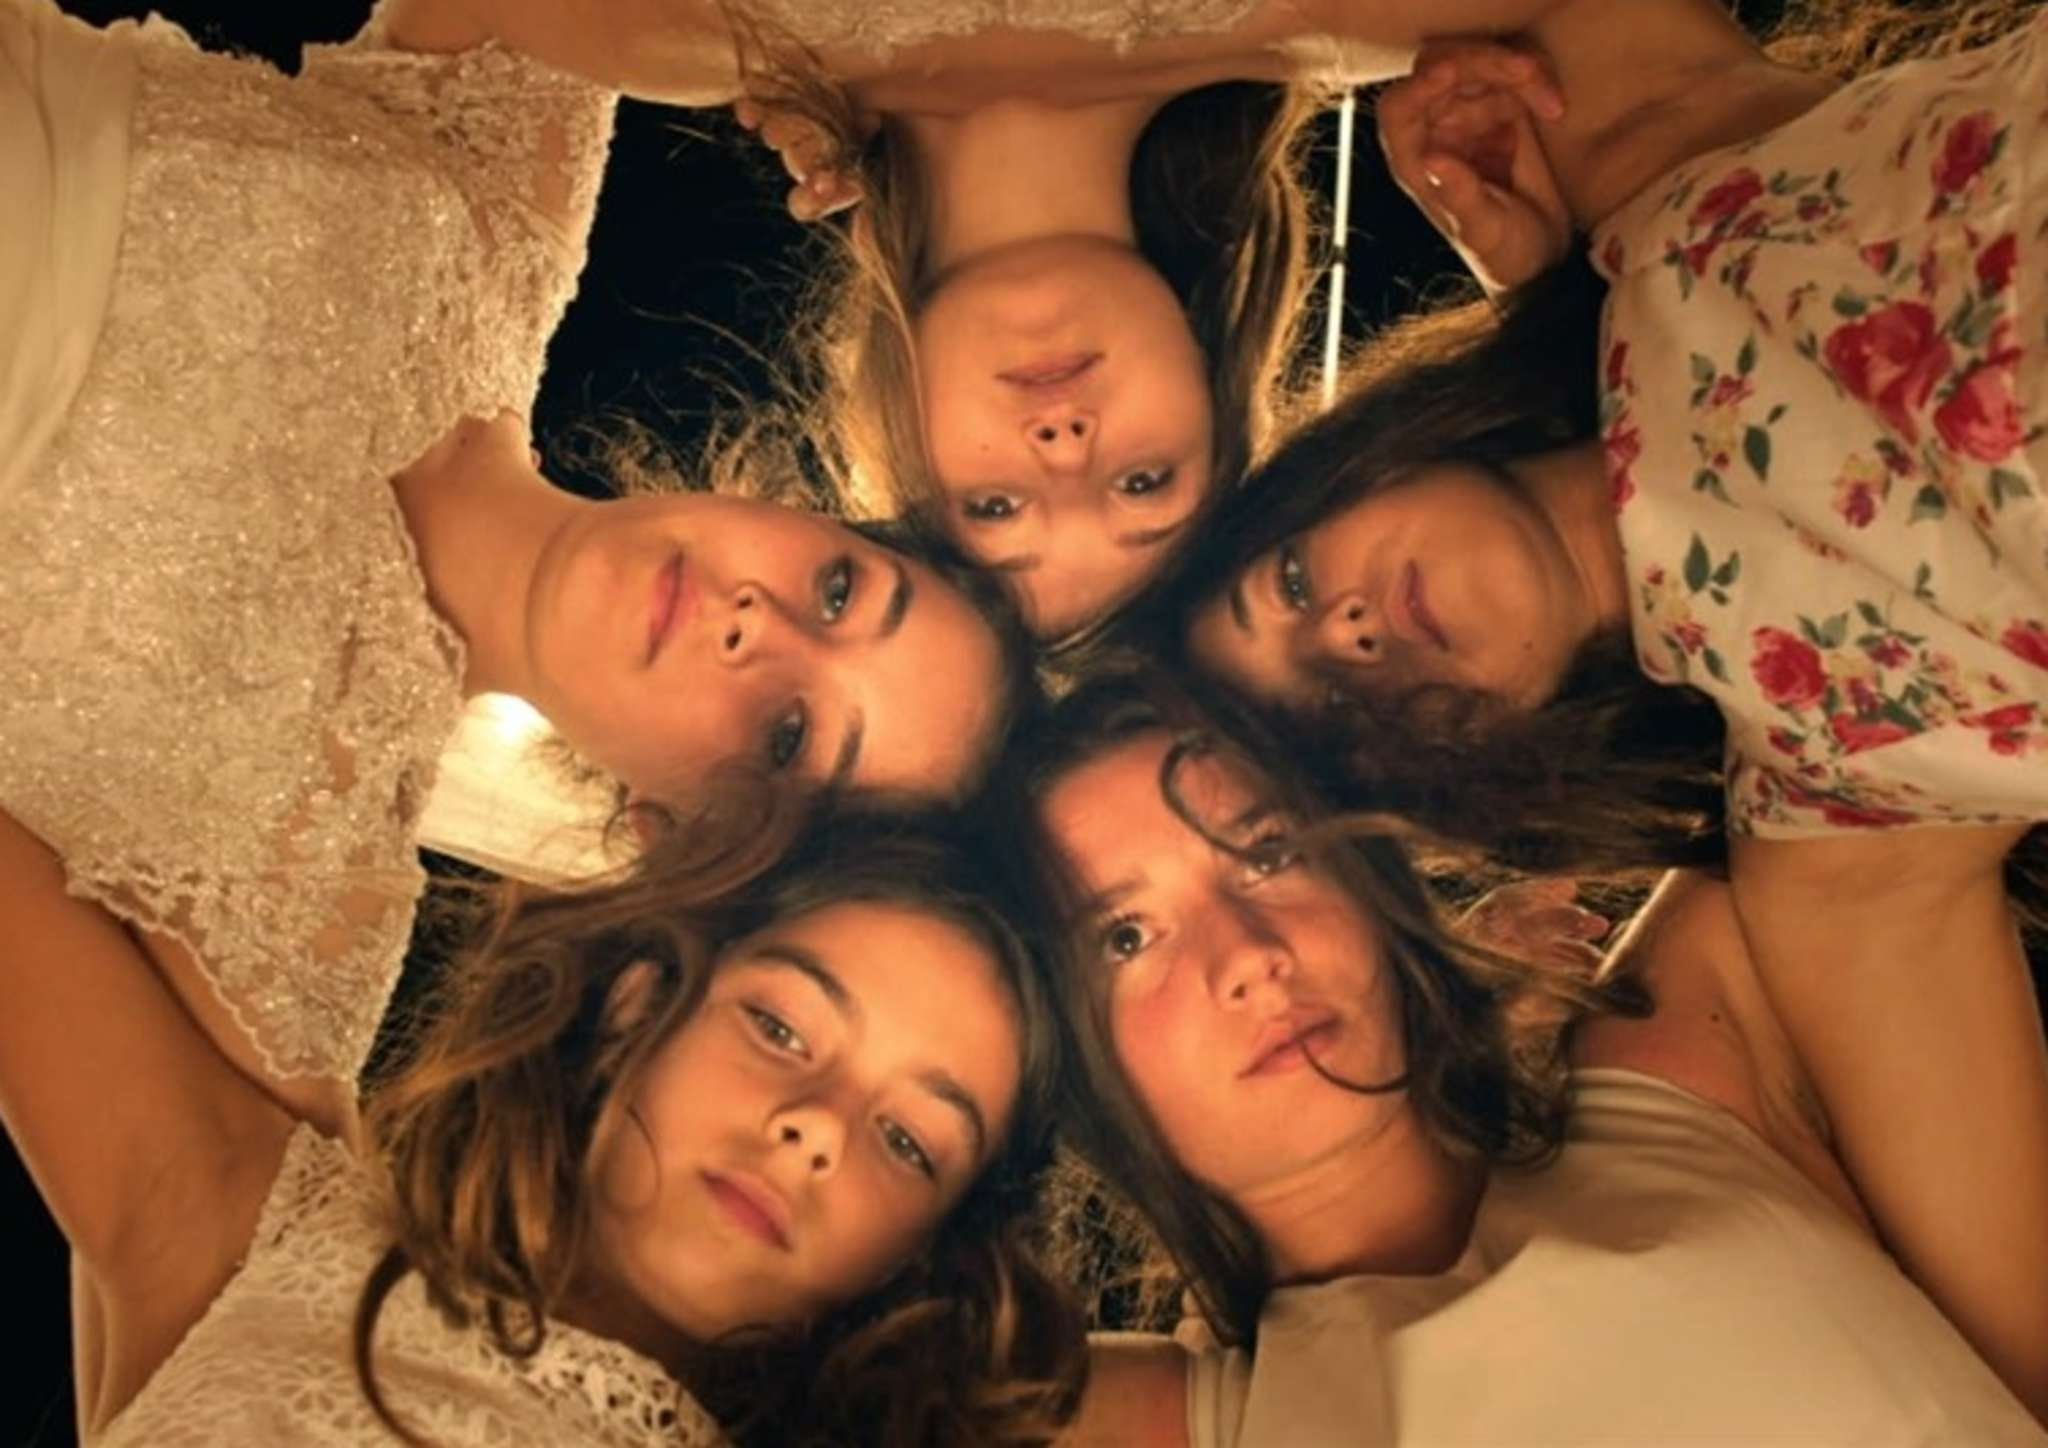 """Mustang"" follows five sisters in northern Turkey whose innocent games lead to their oppression."